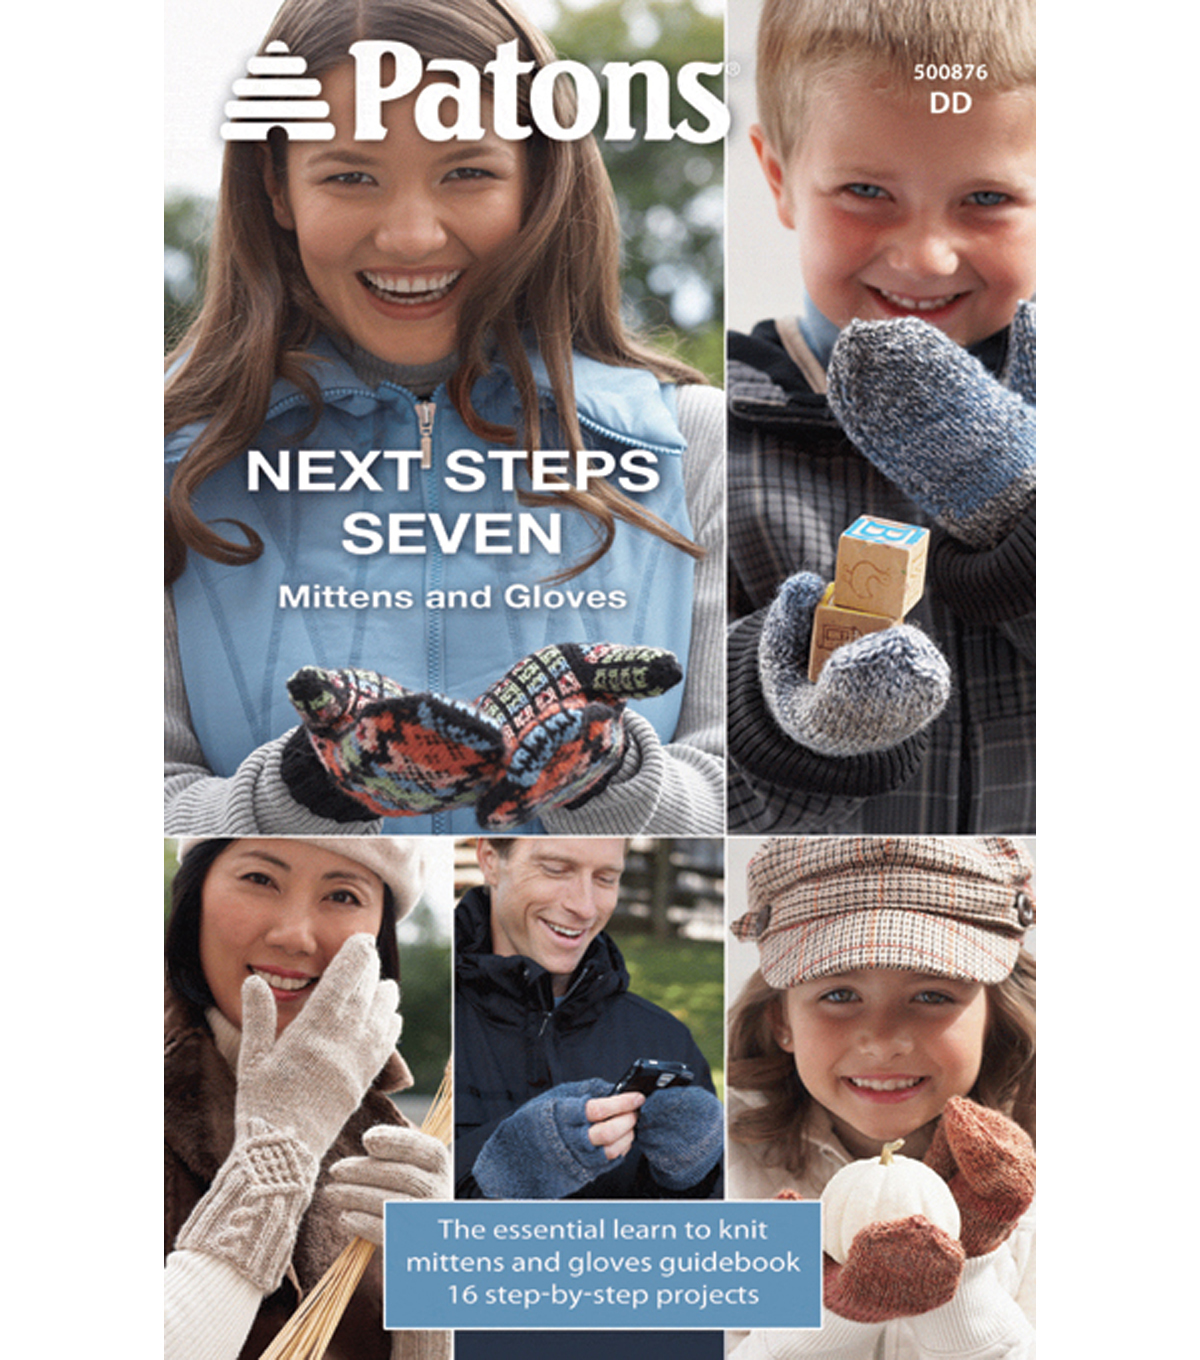 Patons-Next Steps Seven: Mittens & Gloves Knit